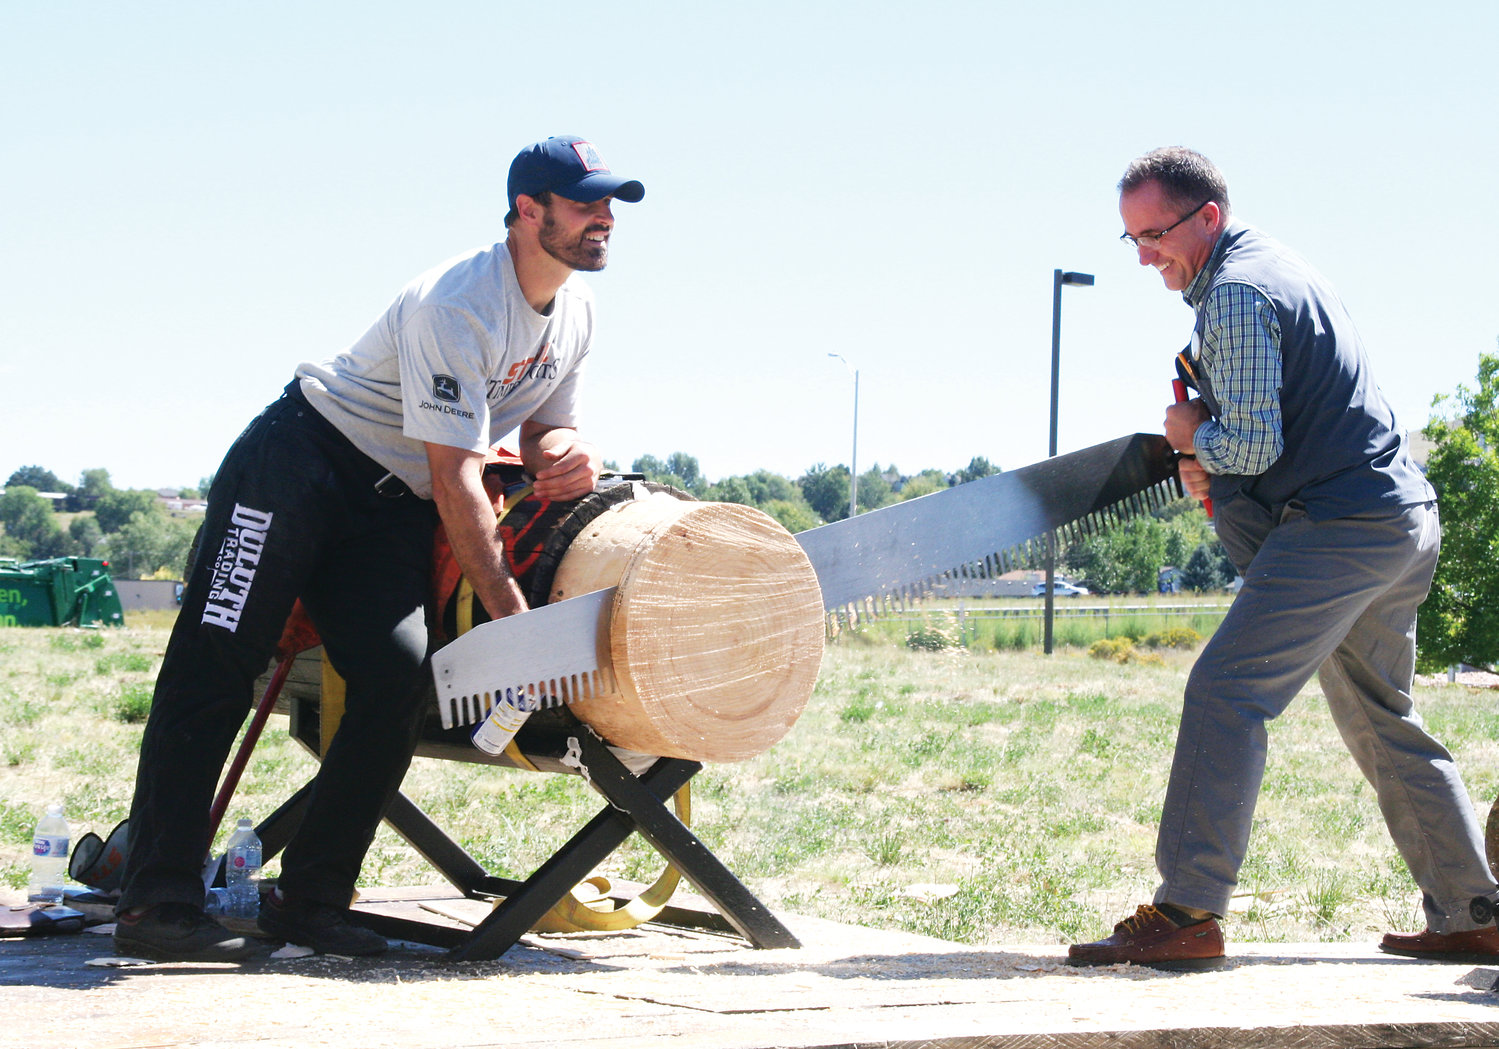 Nathan Waterfield of New York, a professional STIHL Timbersports Series athlete, assists Lonnie Ostransky, the store manager for Duluth Trading Company's newest location in Golden, in sawing a piece of timber during the store's grand opening on Sept. 13, which was celebrated with a lumberjack show.